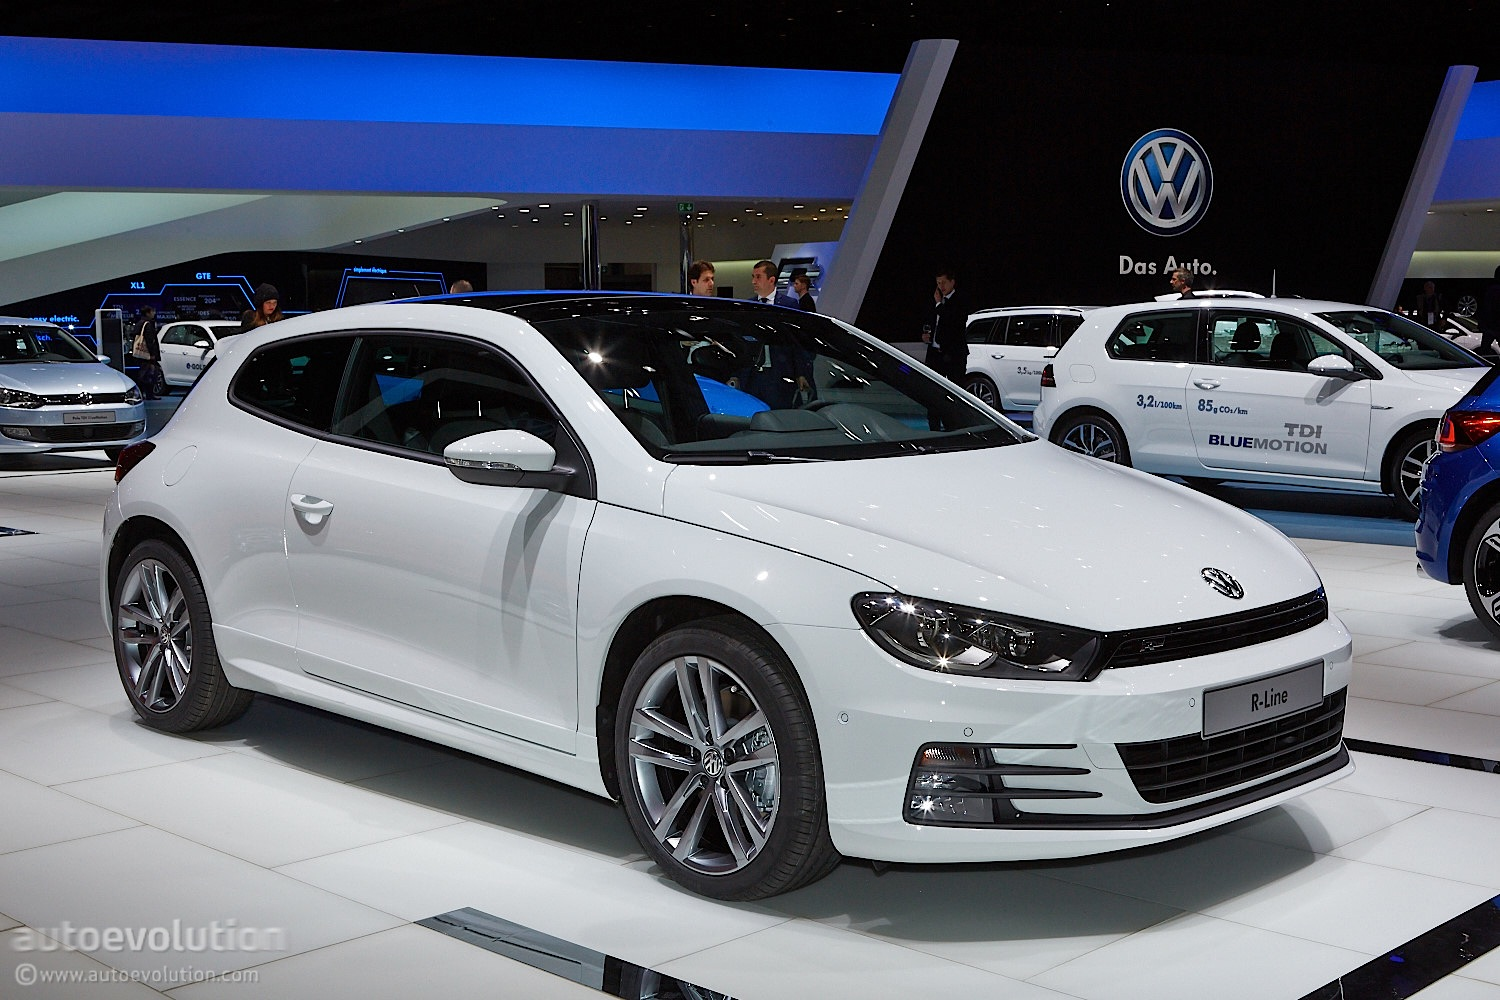 2014 vw scirocco facelift launched in britain pricing and details announced autoevolution. Black Bedroom Furniture Sets. Home Design Ideas